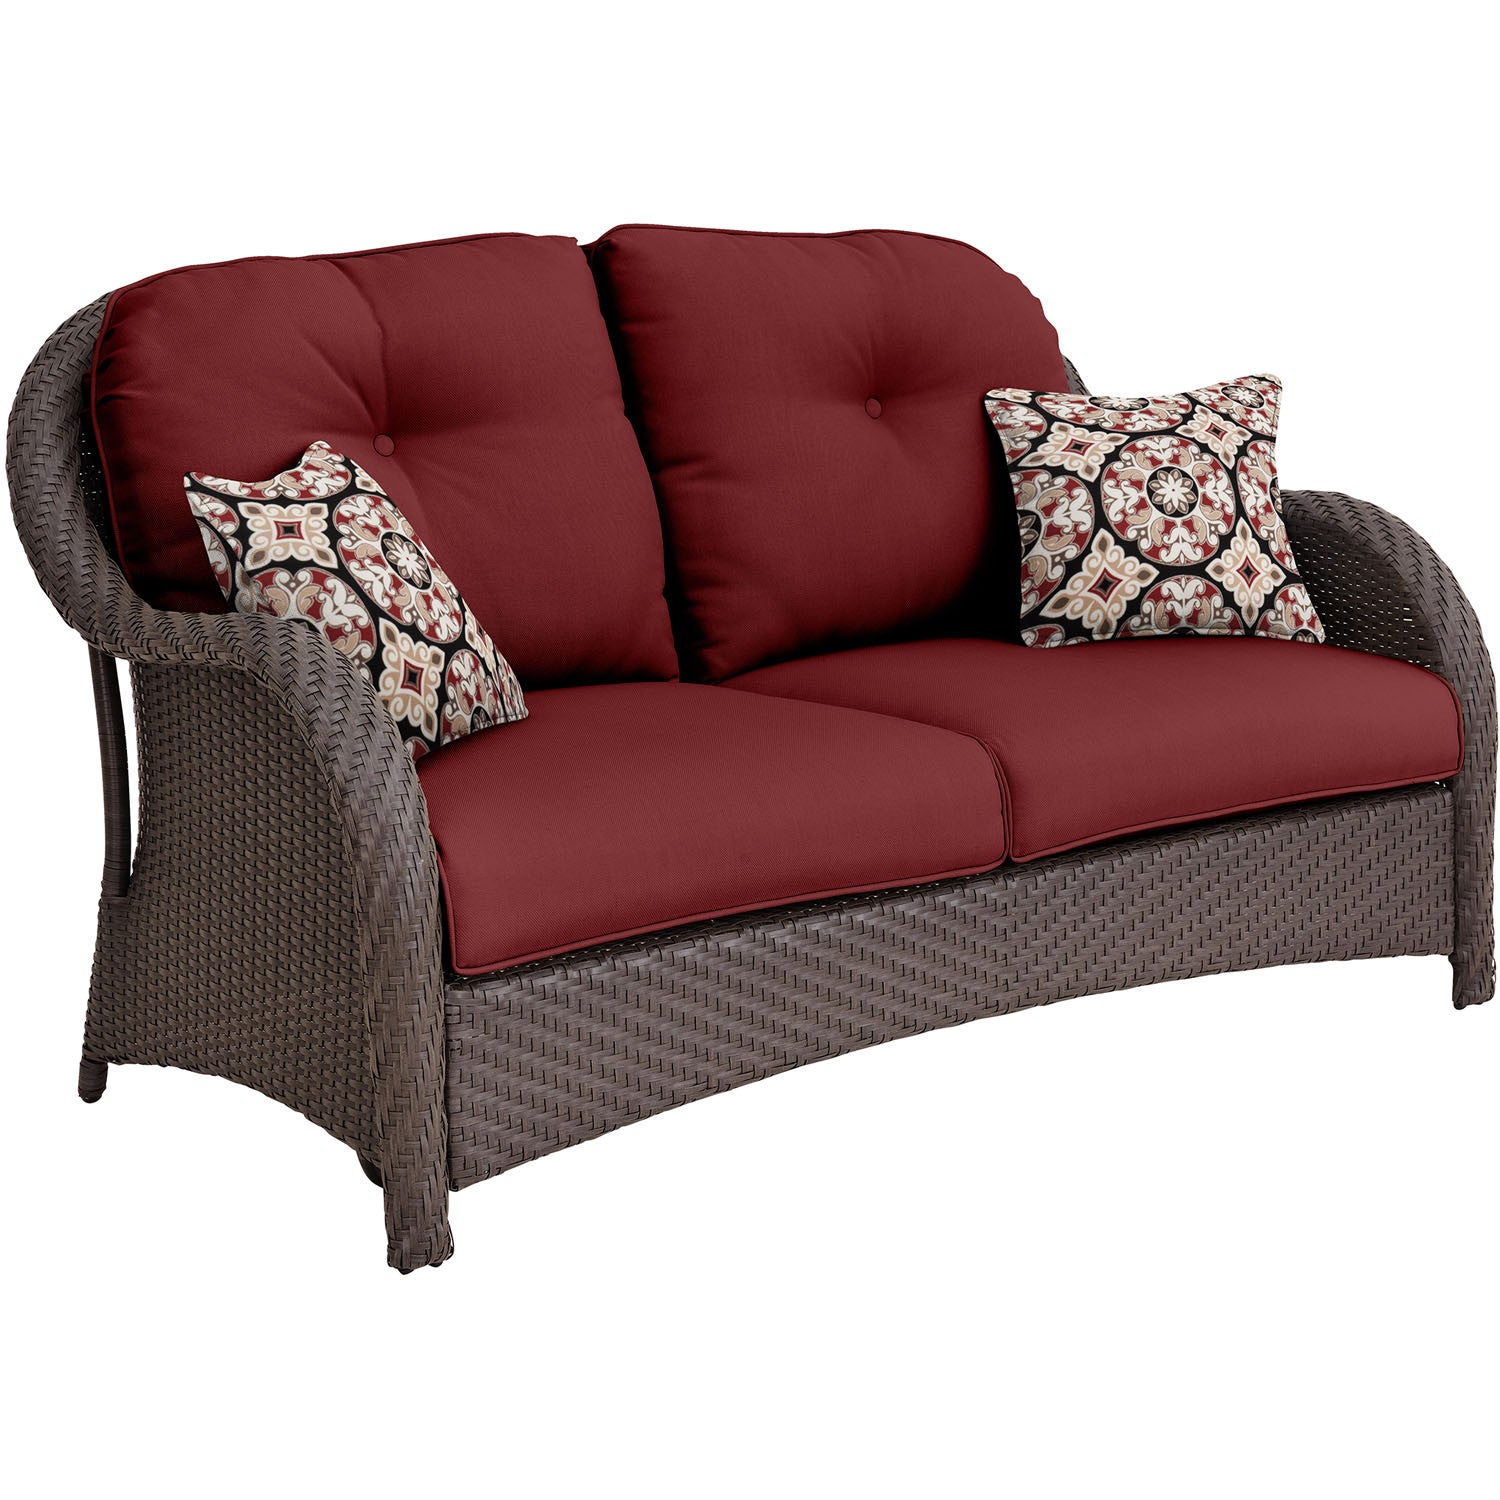 6pc Woven Deep Seating Set: Loveseat, 2 Chairs, 2 Ottomans, 1 Coffee Table    NEWPORT6PC RED   Gray/Crimson Red